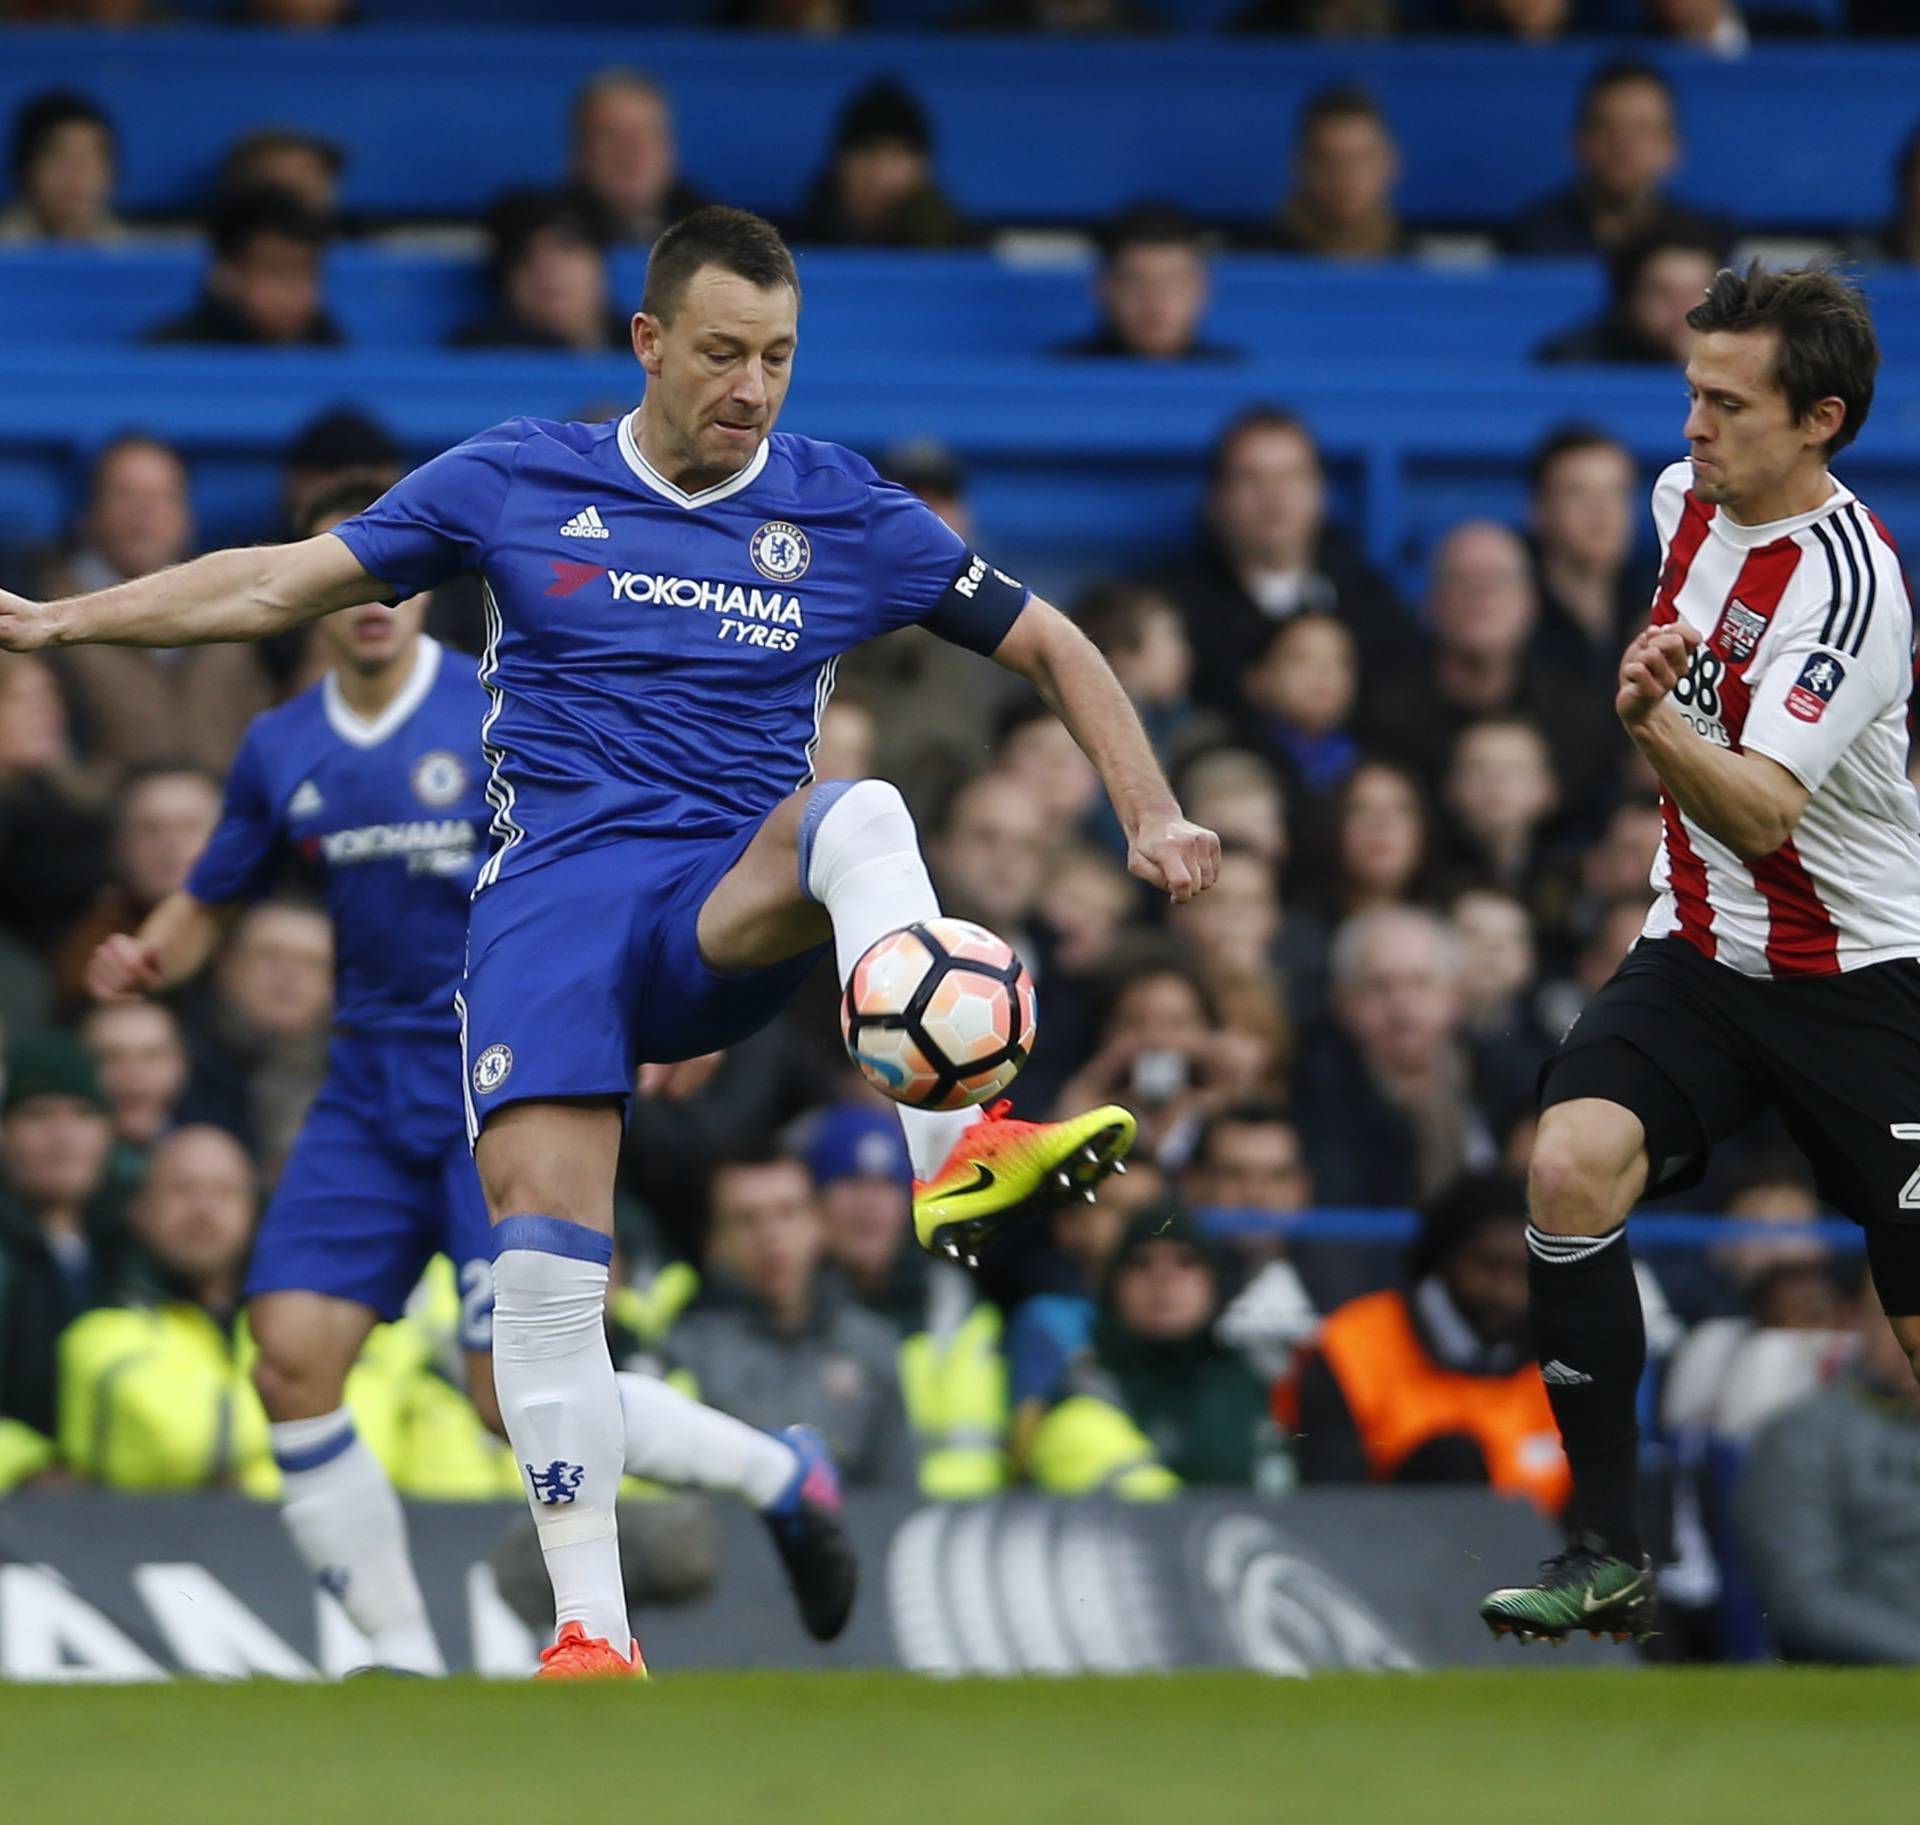 Chelsea's John Terry in action with Brentford's Lasse Vibe